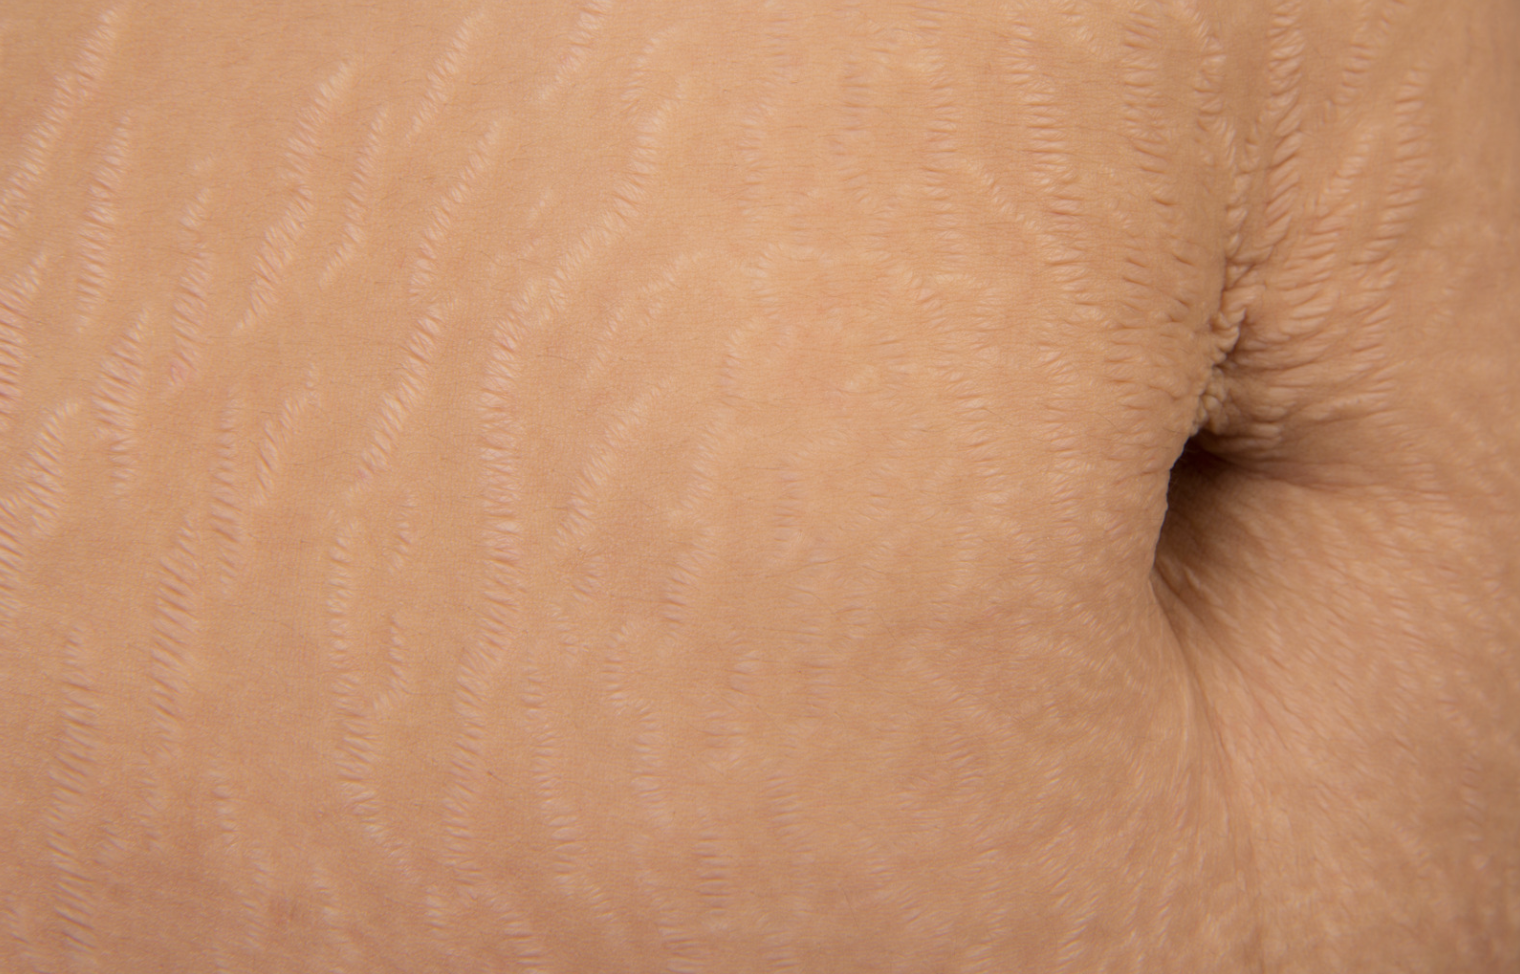 Can you ever actually get rid of stretch marks?